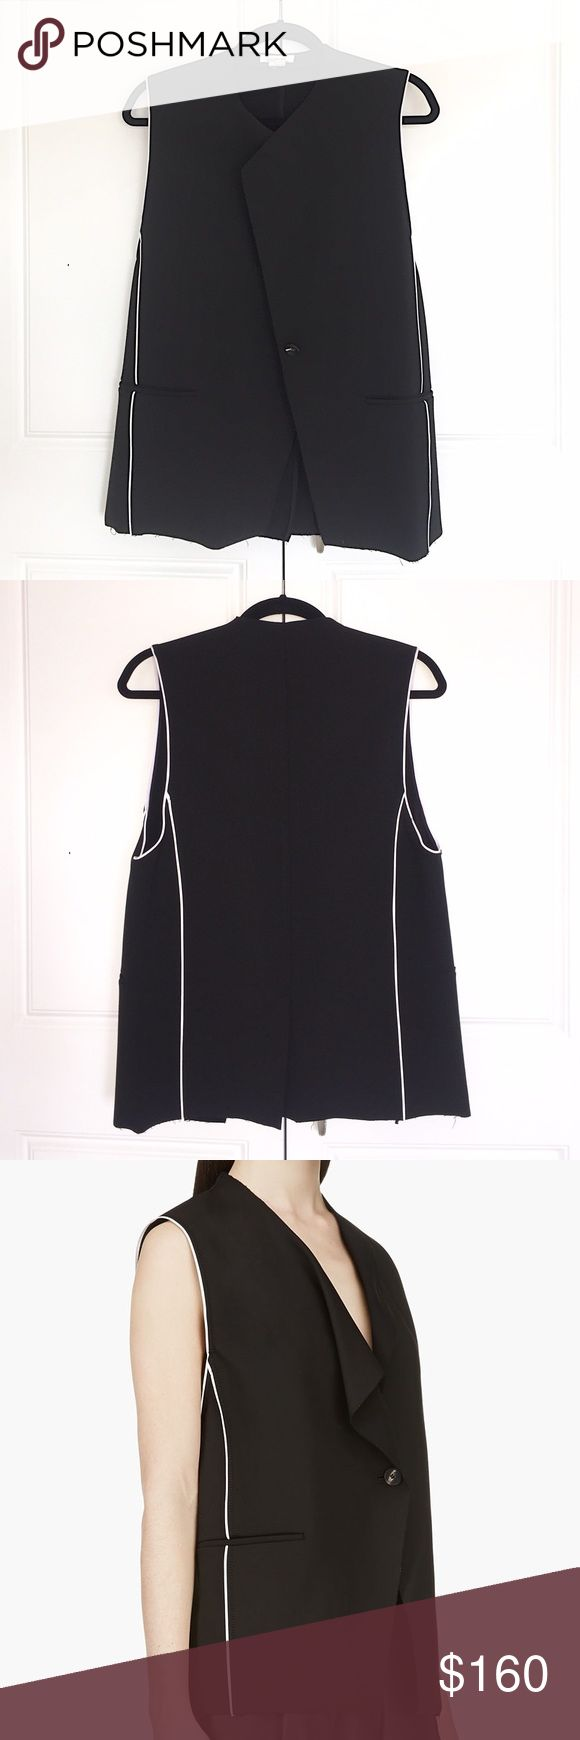 HELMUT LANG Vest w/ White Piping (NWOT) NWOT - This uber trendy black HELMUT LANG wool & cotton blend vest has striking contrast white piping & a one button closure. It can go both casual or dressy, with its blazer style and it's trim-less touches. Never been worn, NWOT. Size small. Helmut Lang Jackets & Coats Vests